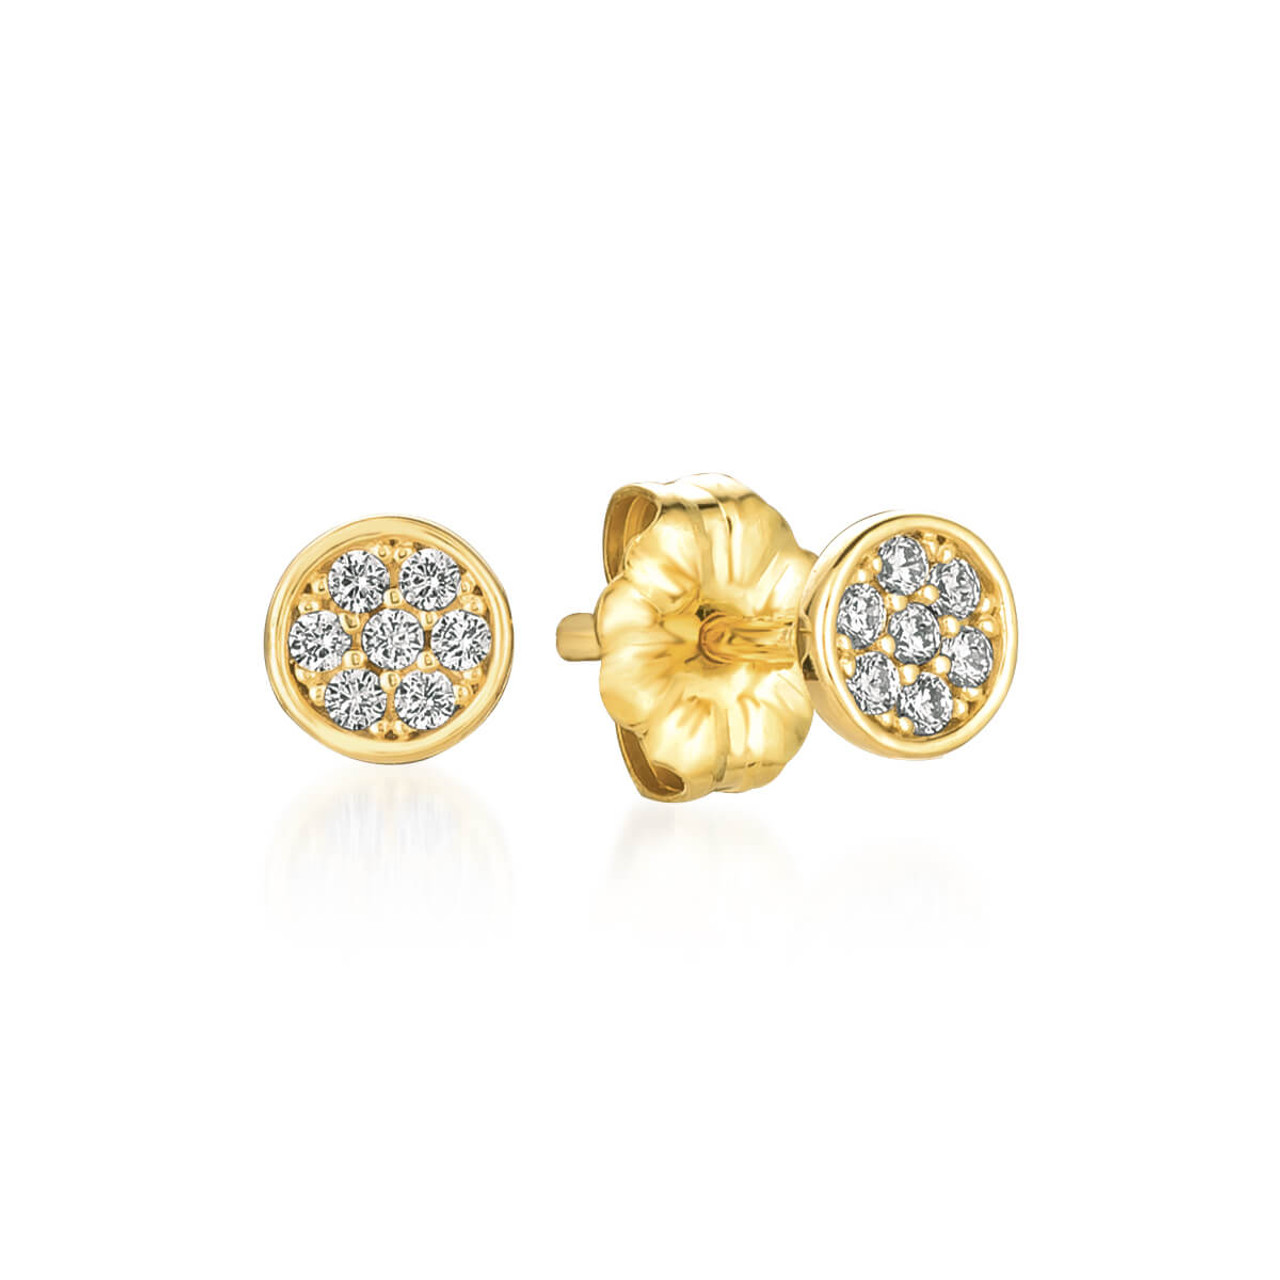 double topaz stud zircornia round birth solitaire set november accent cut yellow gold sizes screwback cubic stone earrings colors other prong